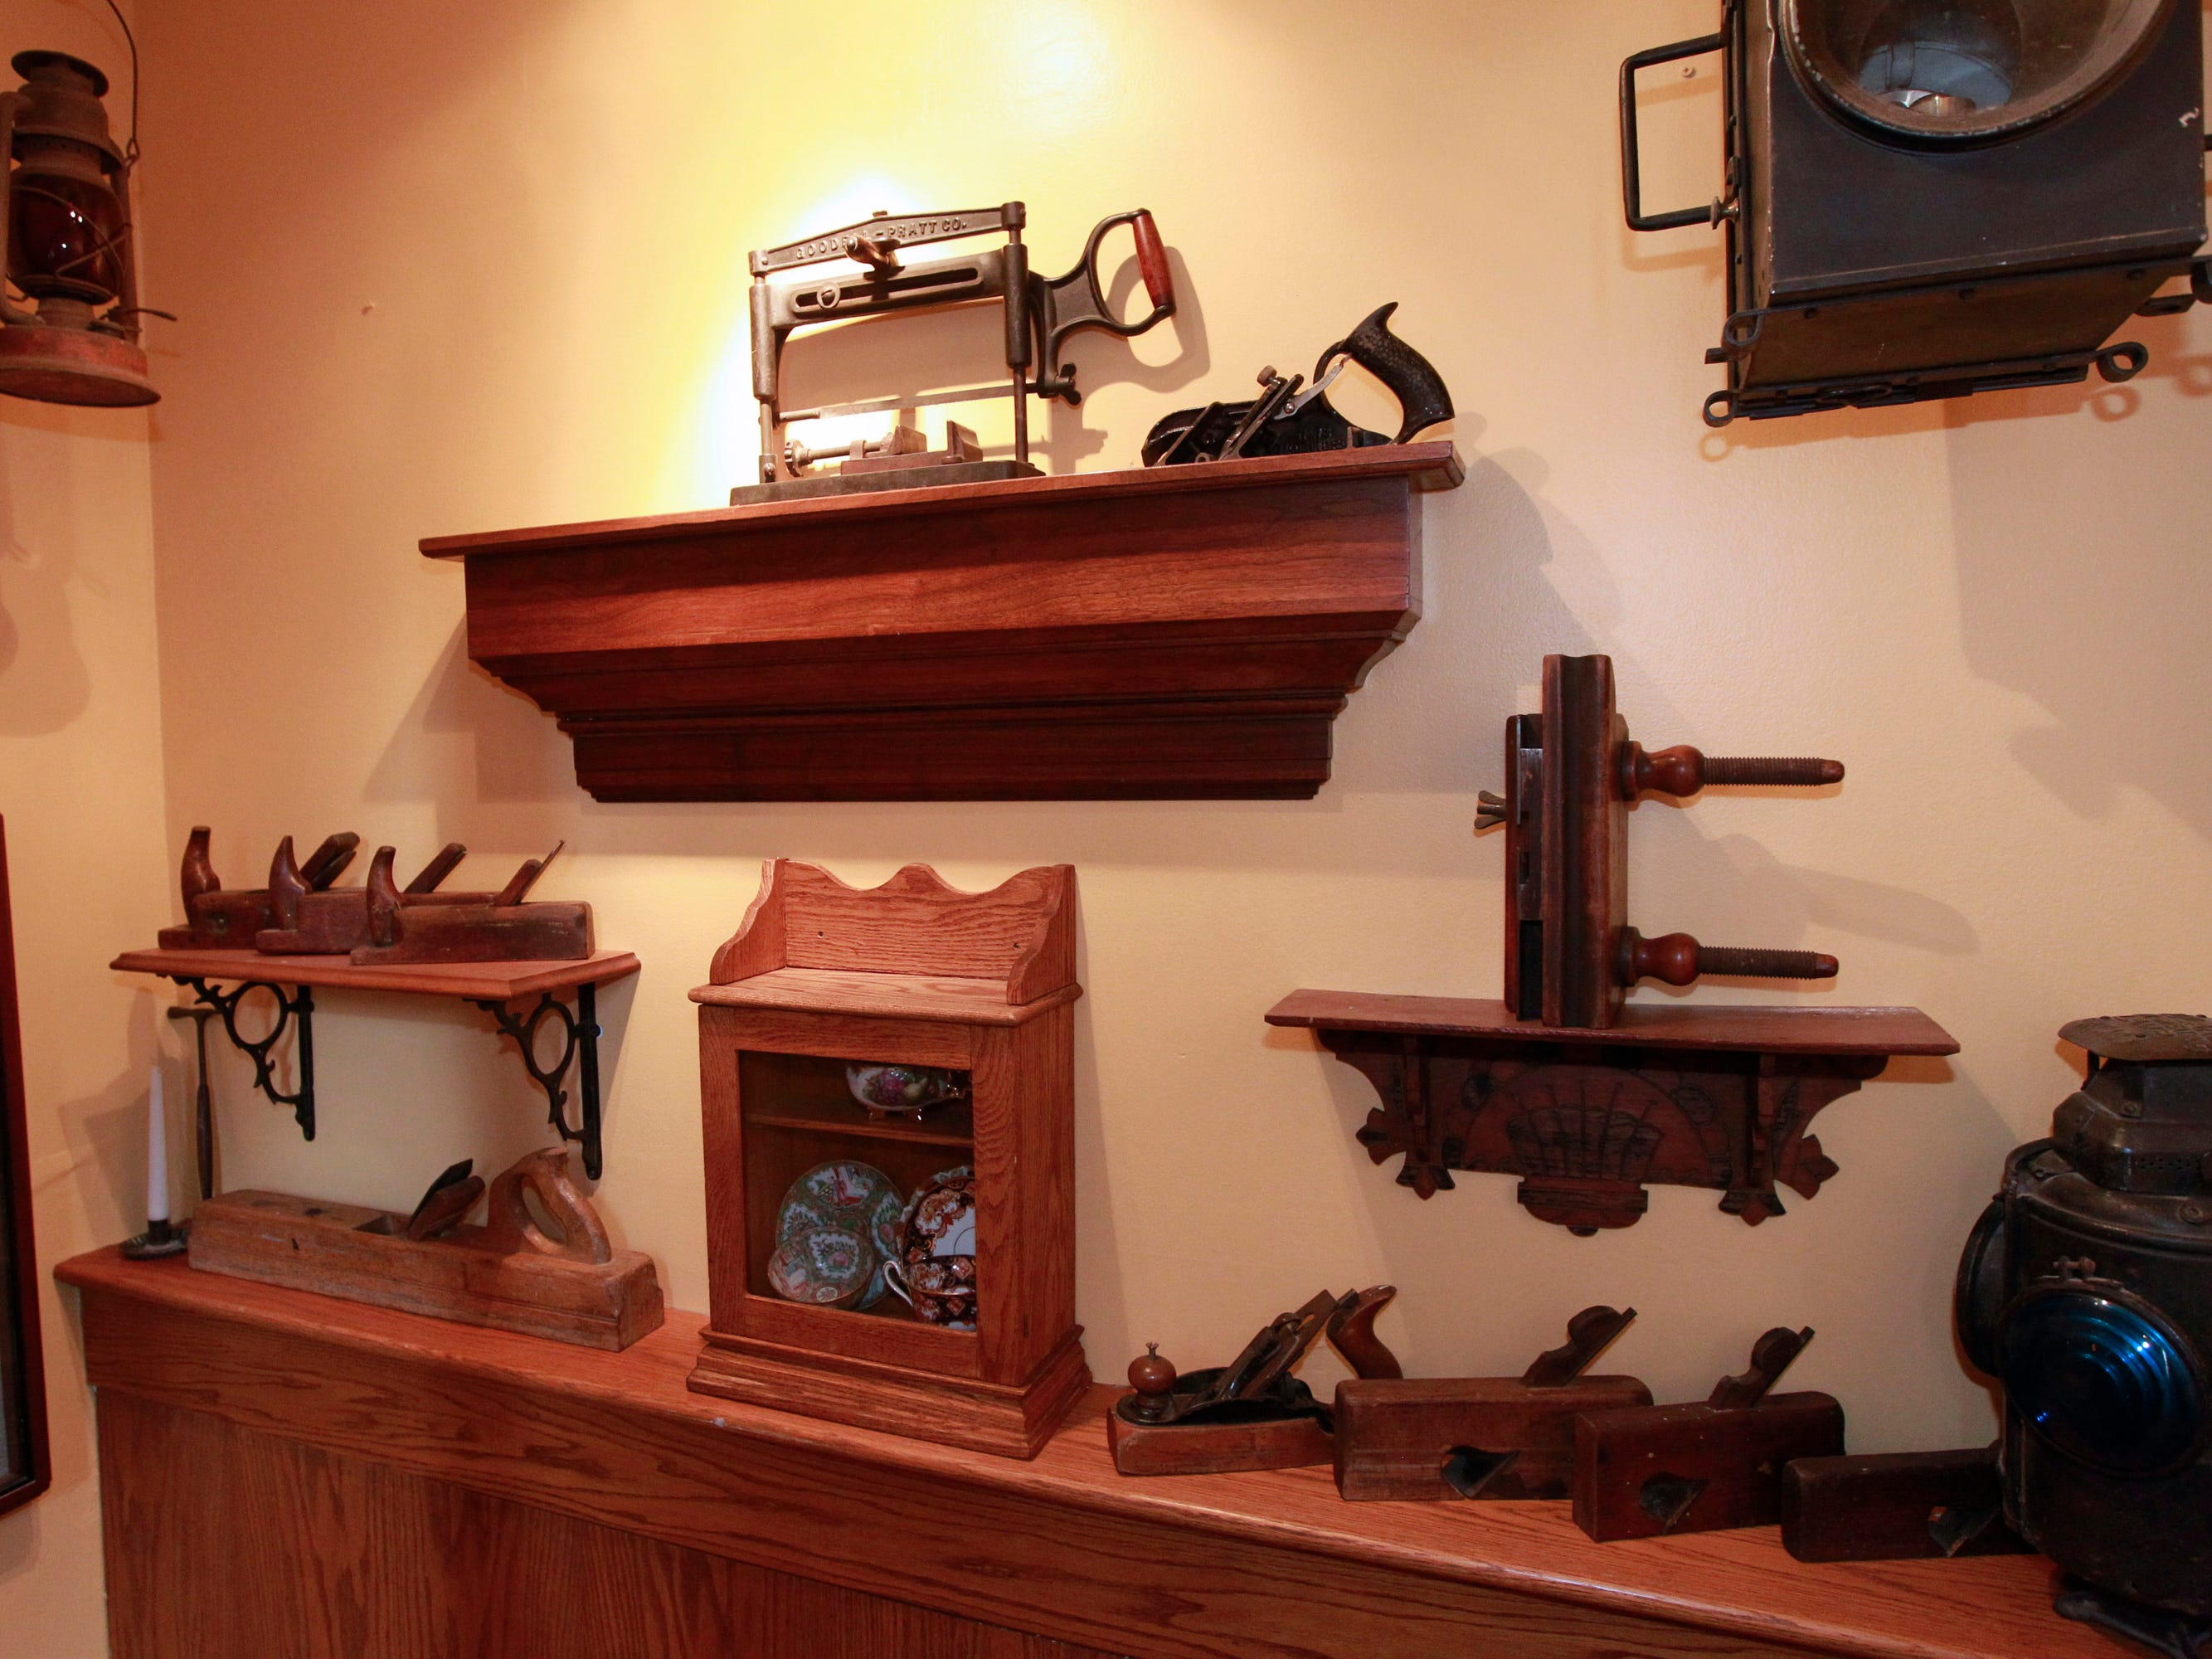 An assortment of antique pieces on display in the staircase area include a headlight from a steam train and wood planes used for shaving wood.